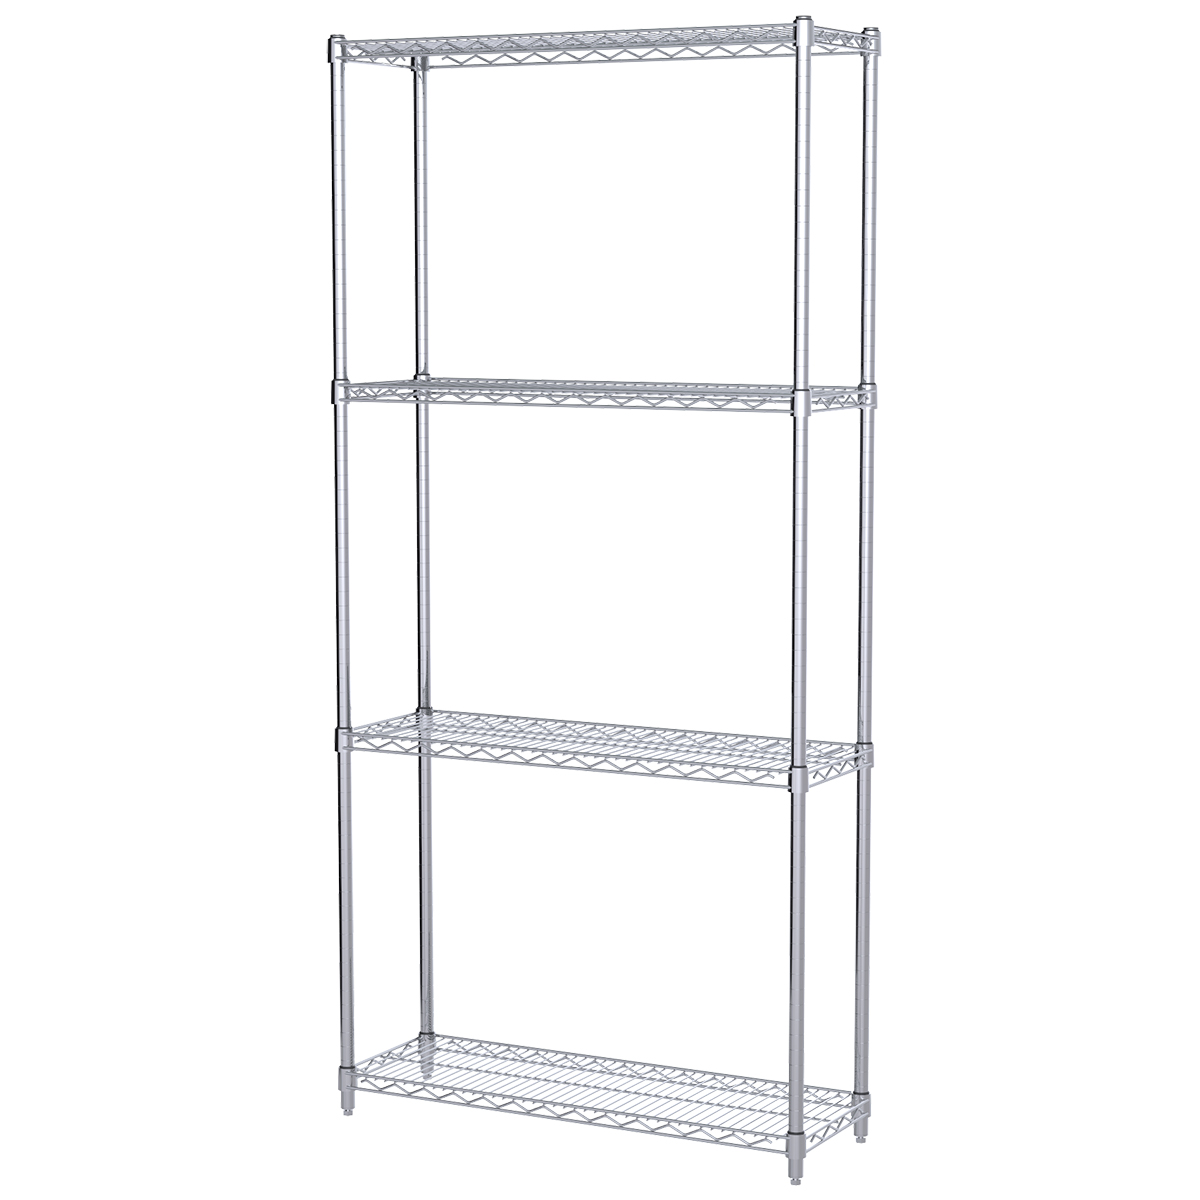 12x36x74, 4-Shelf Wire Shelving Starter Unit, Chrome.  This item sold in carton quantities of 1.